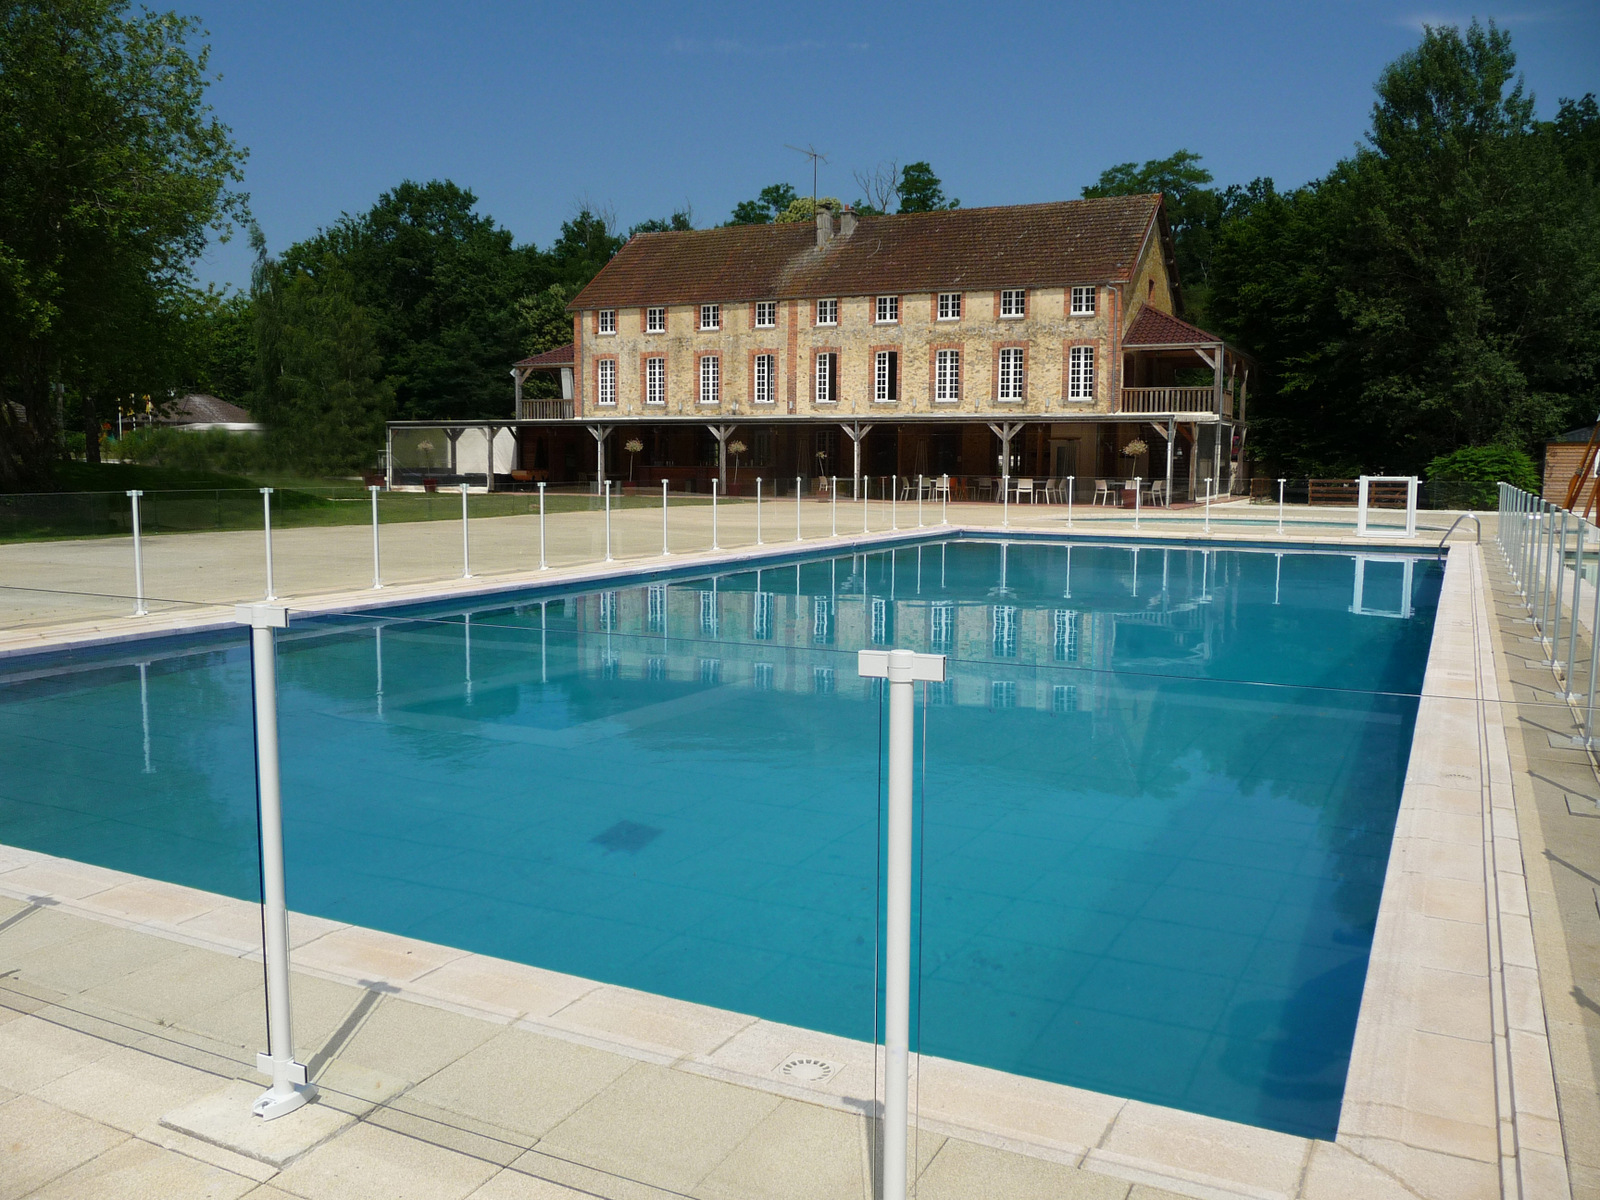 Cloture pour piscine elegant cloture pour piscine with for Cloture piscine